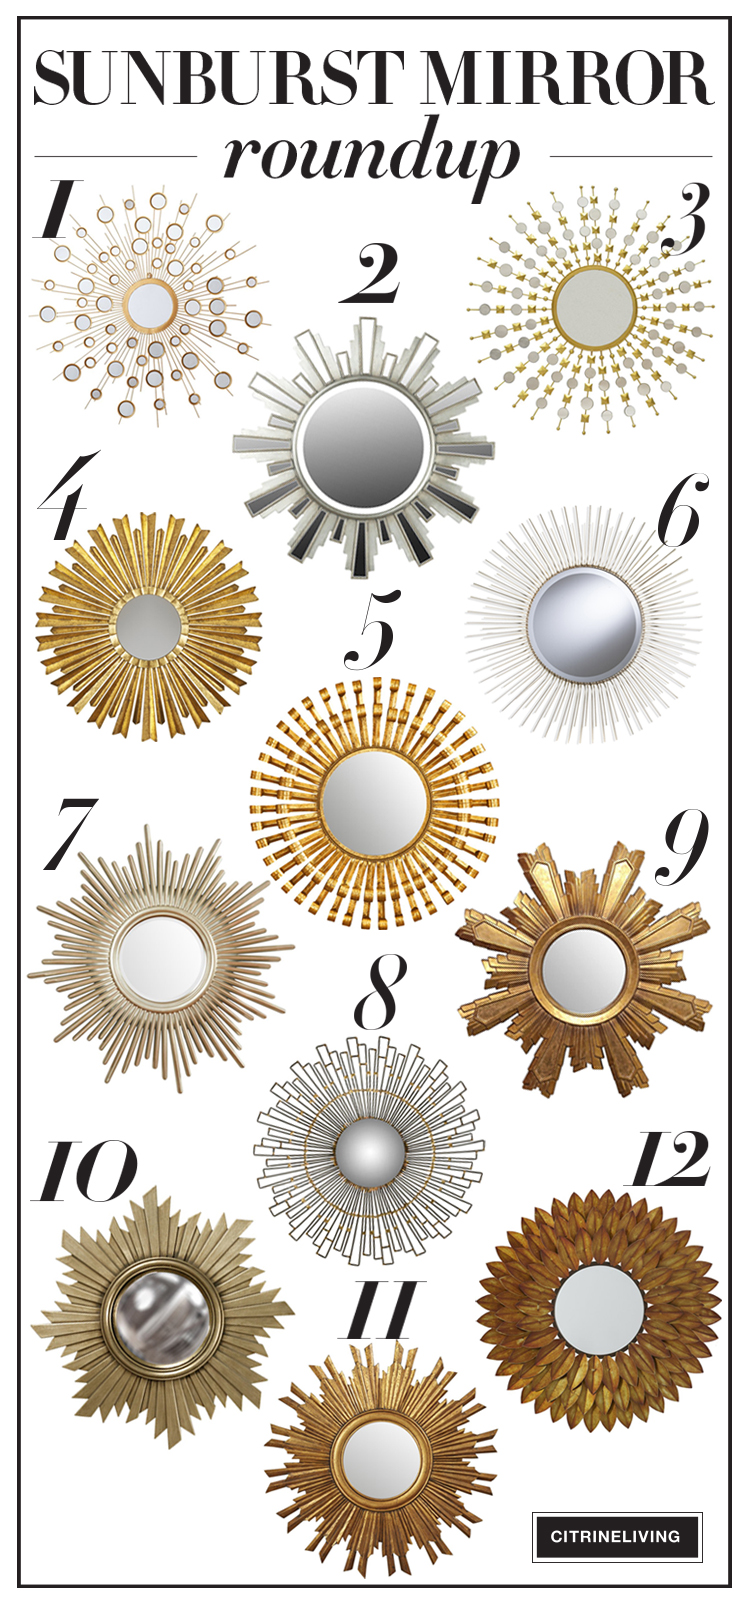 A roundup of chic and elegant sunburst mirrors that will suit any decor!